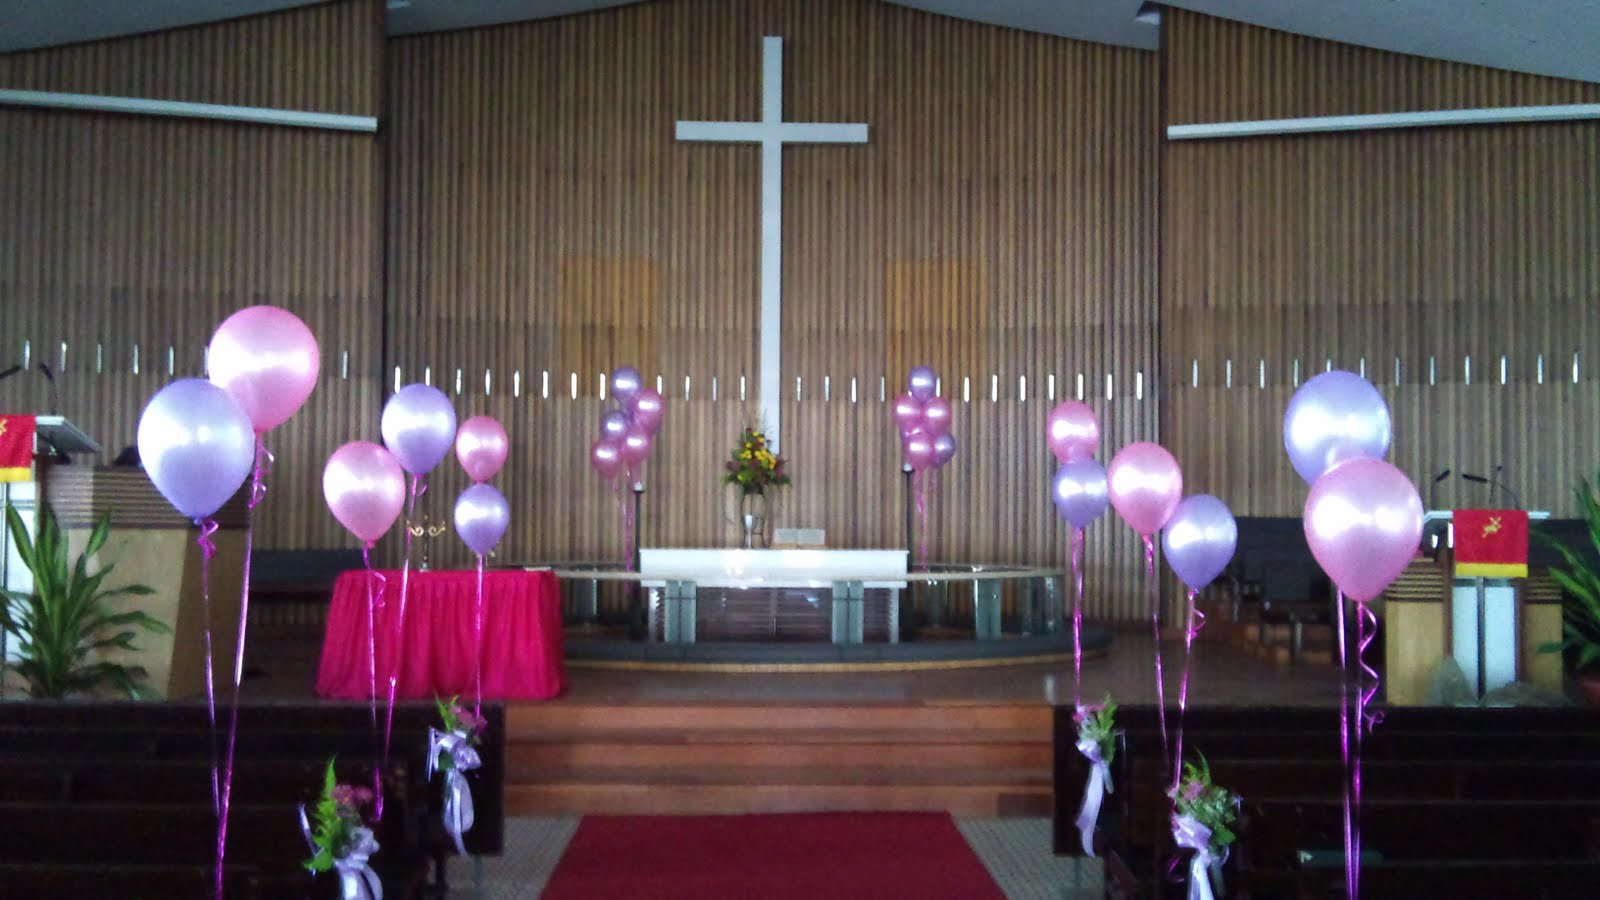 Balloon Decorations For Weddings, Birthday Parties